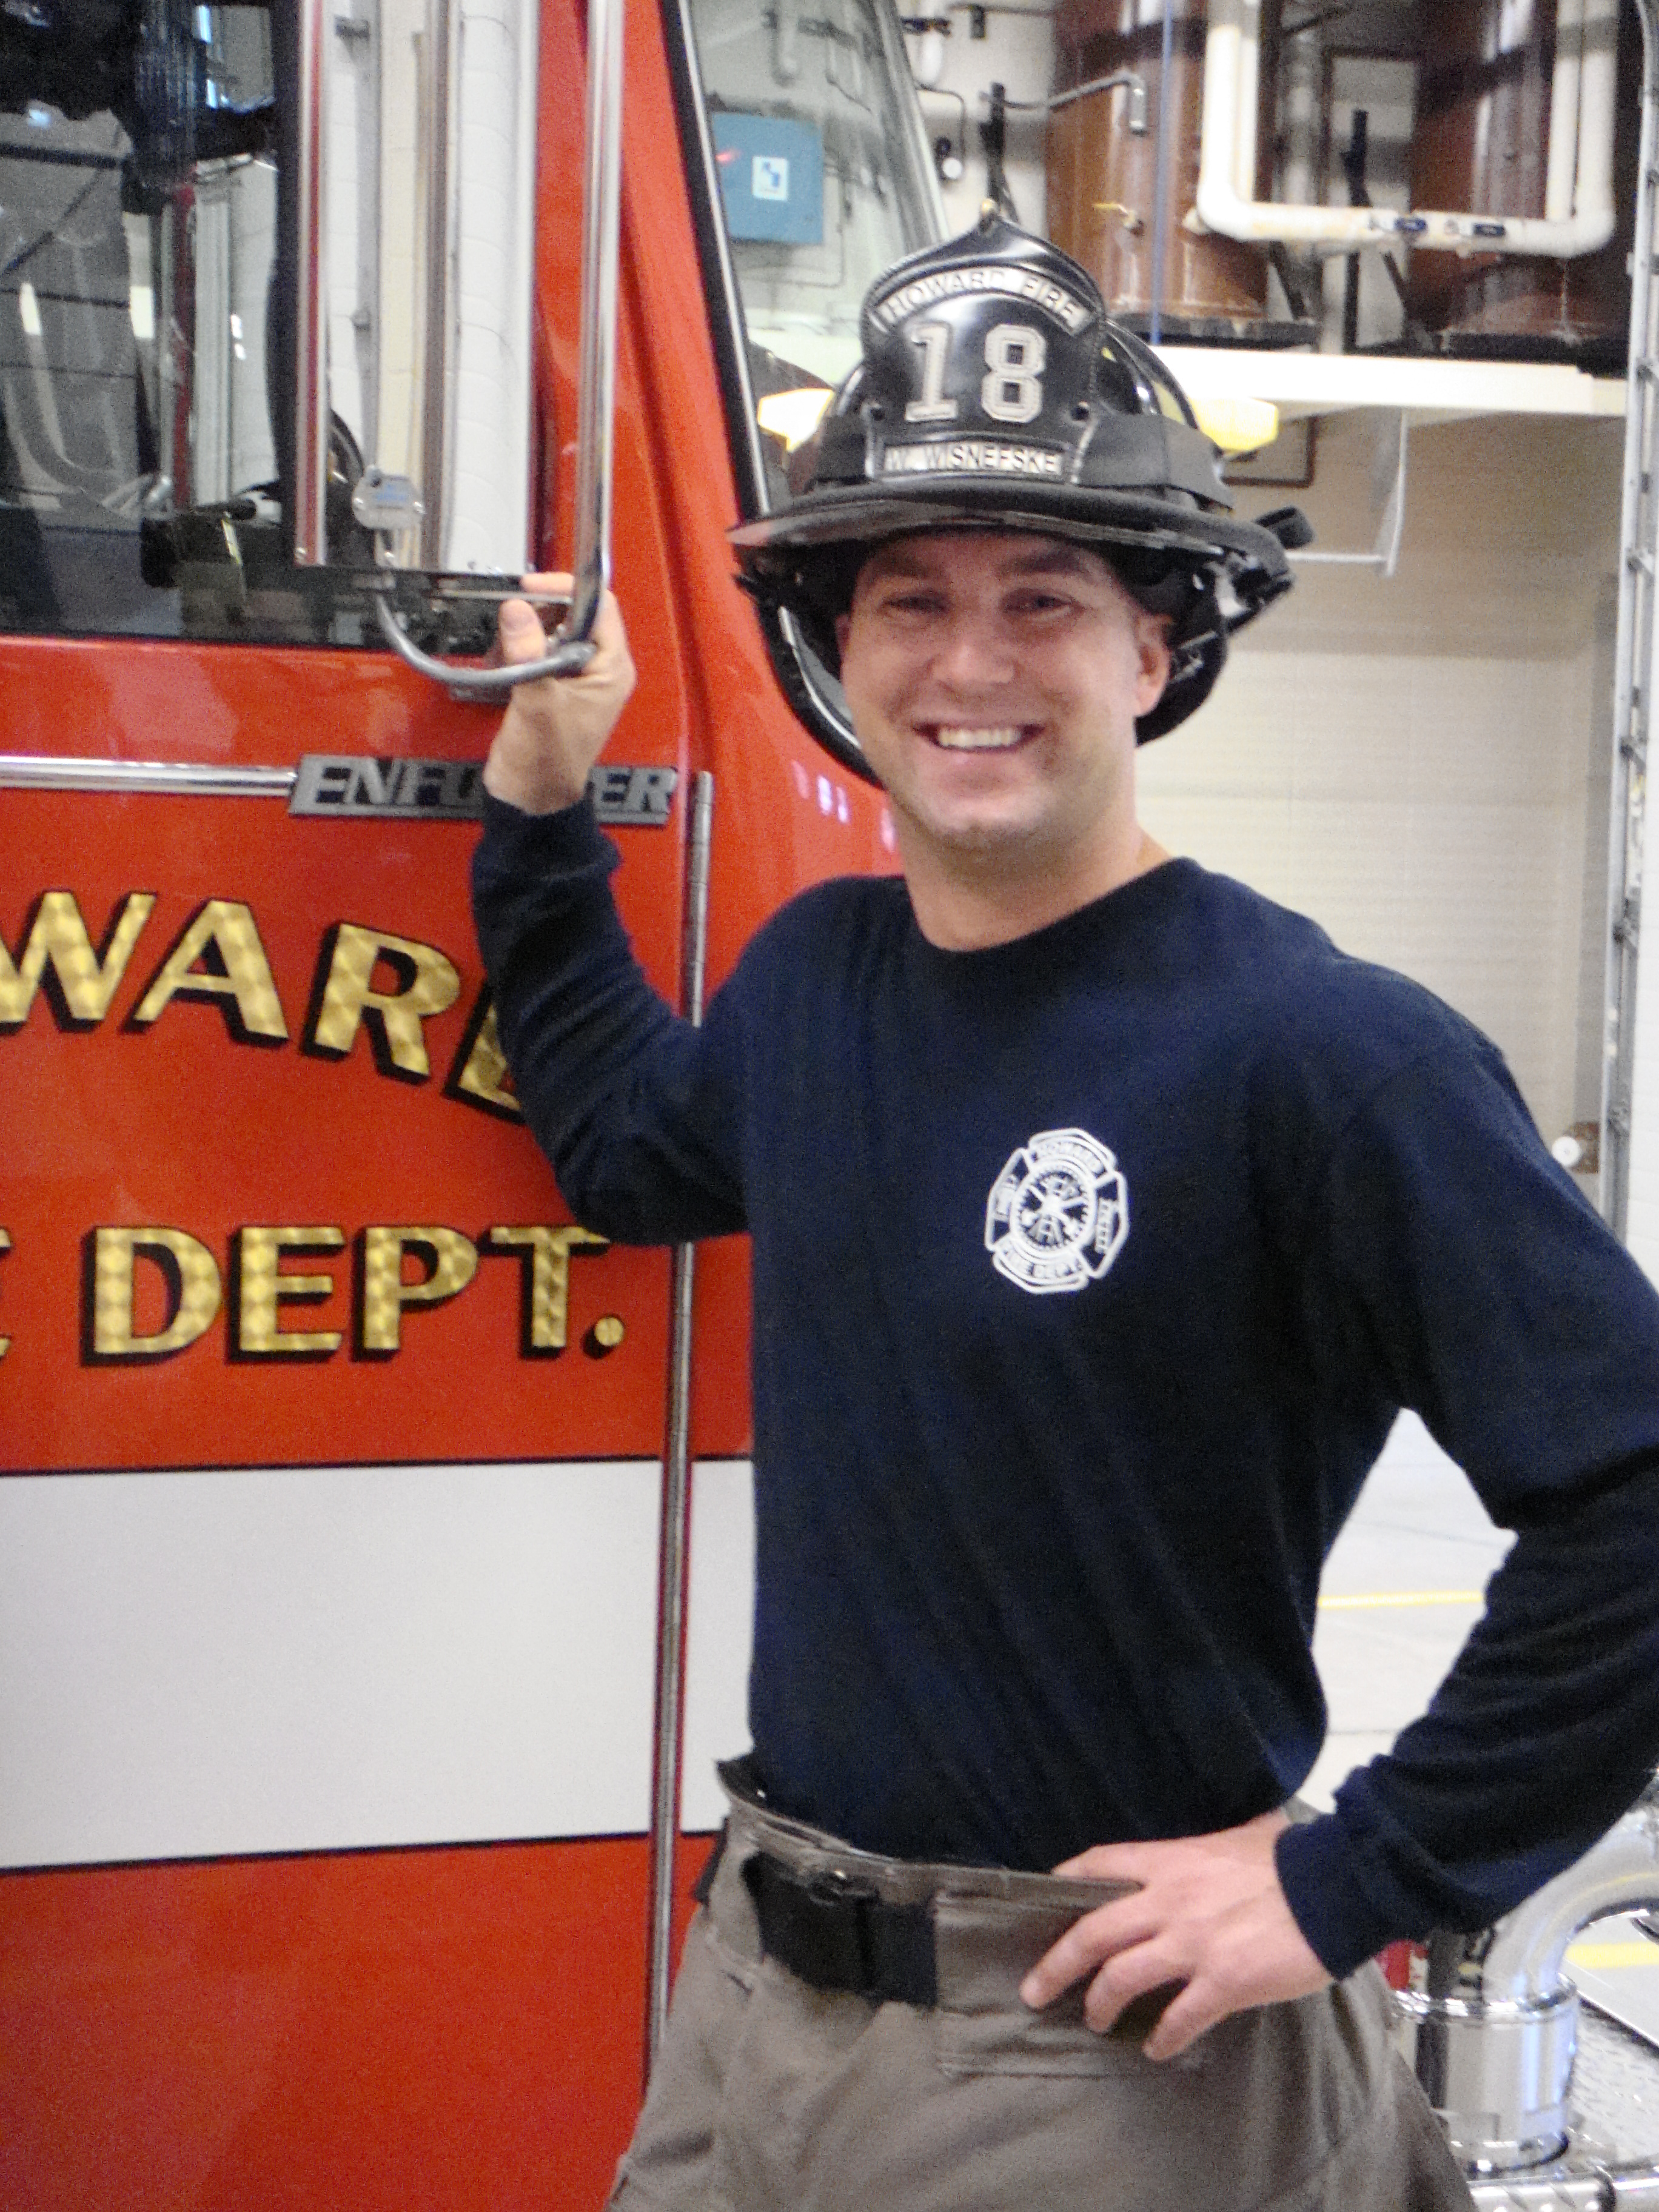 Firefighters' Bucket Brigade Spotlight on Wyatt Wisnefske ...